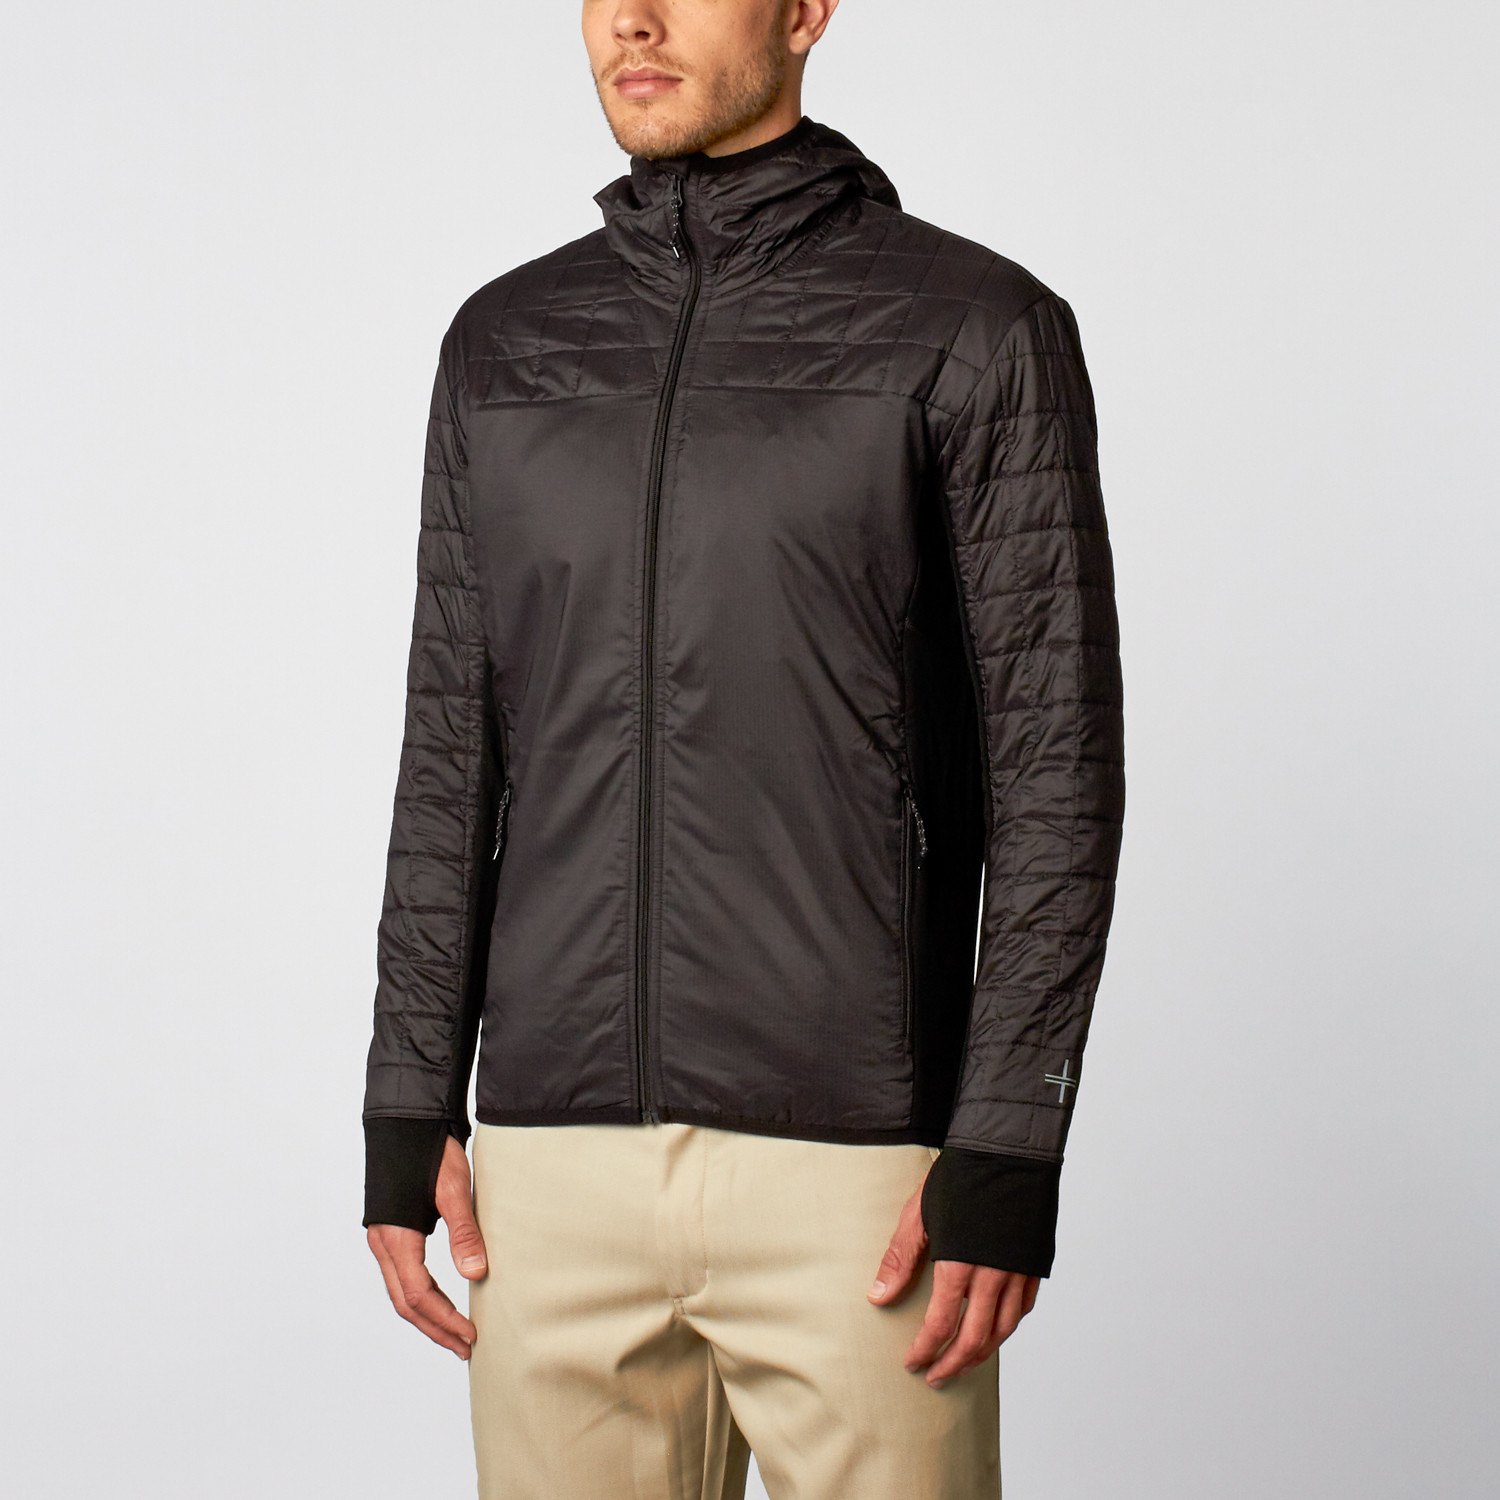 904d1a31803 Dd1748d4cb0bb17bad9e914a69c11242 medium. Icebreaker // Helix Quilted Hooded  Jacket ...